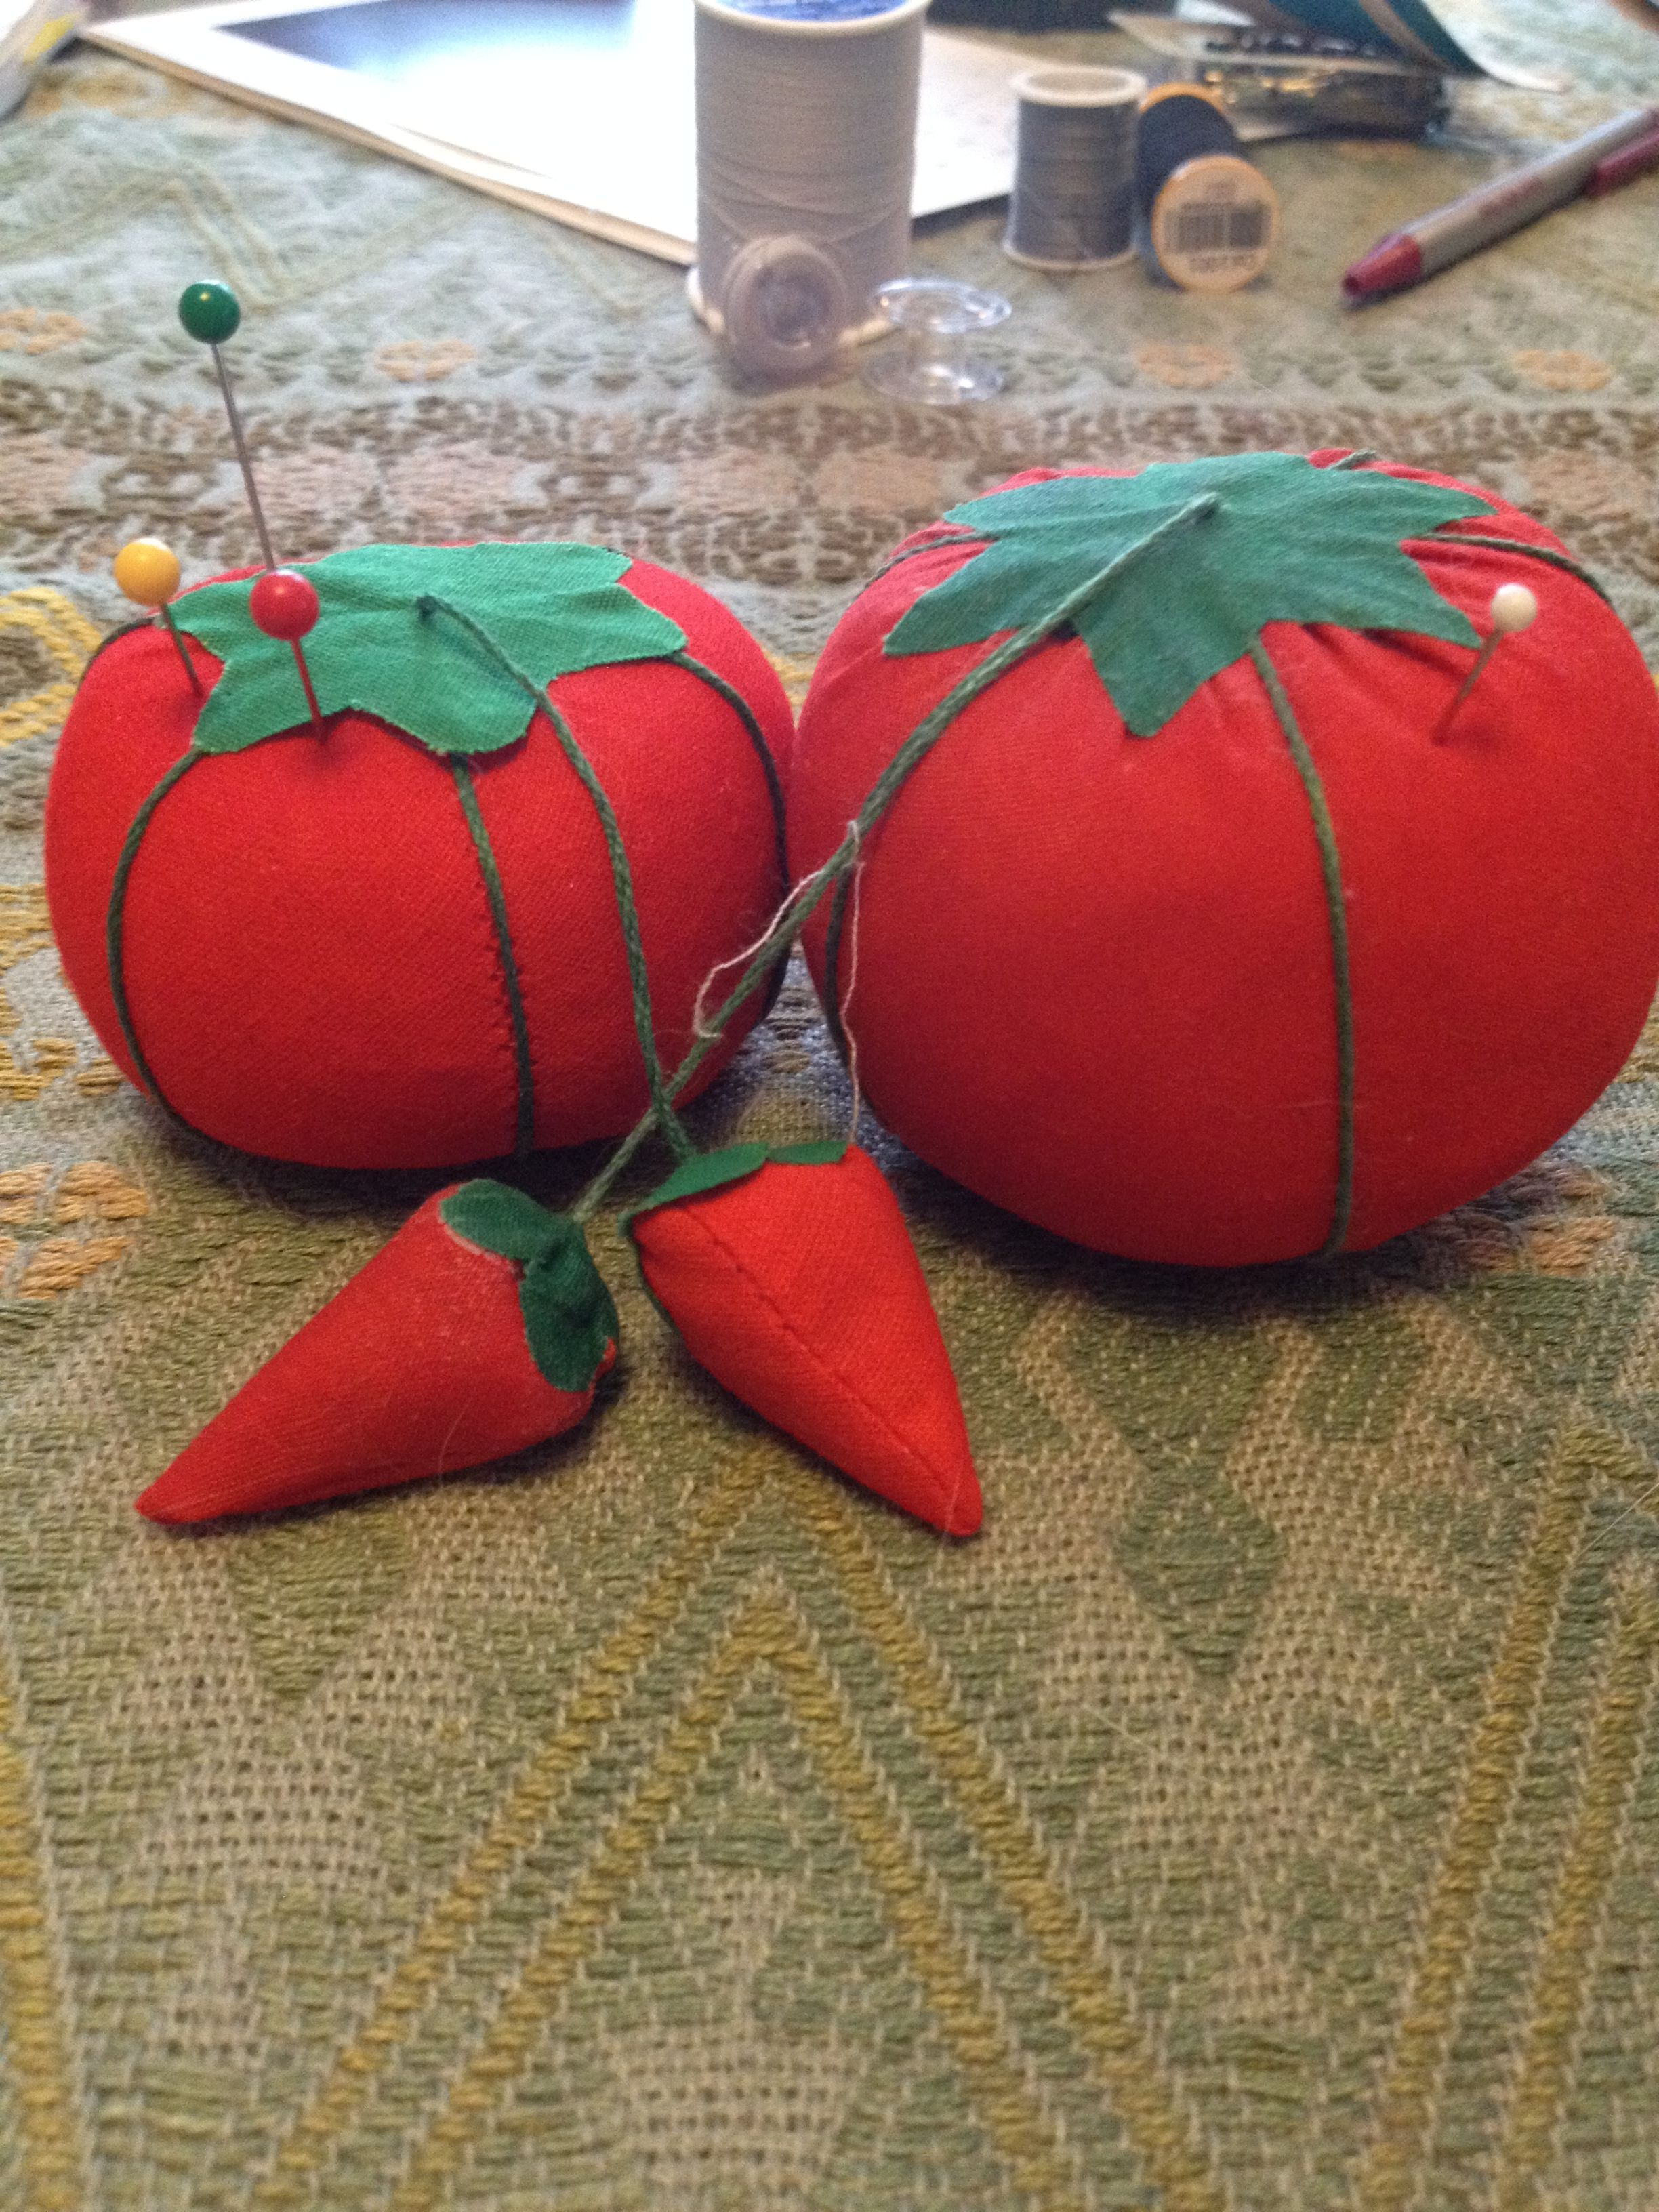 2 tomatoes in a pod